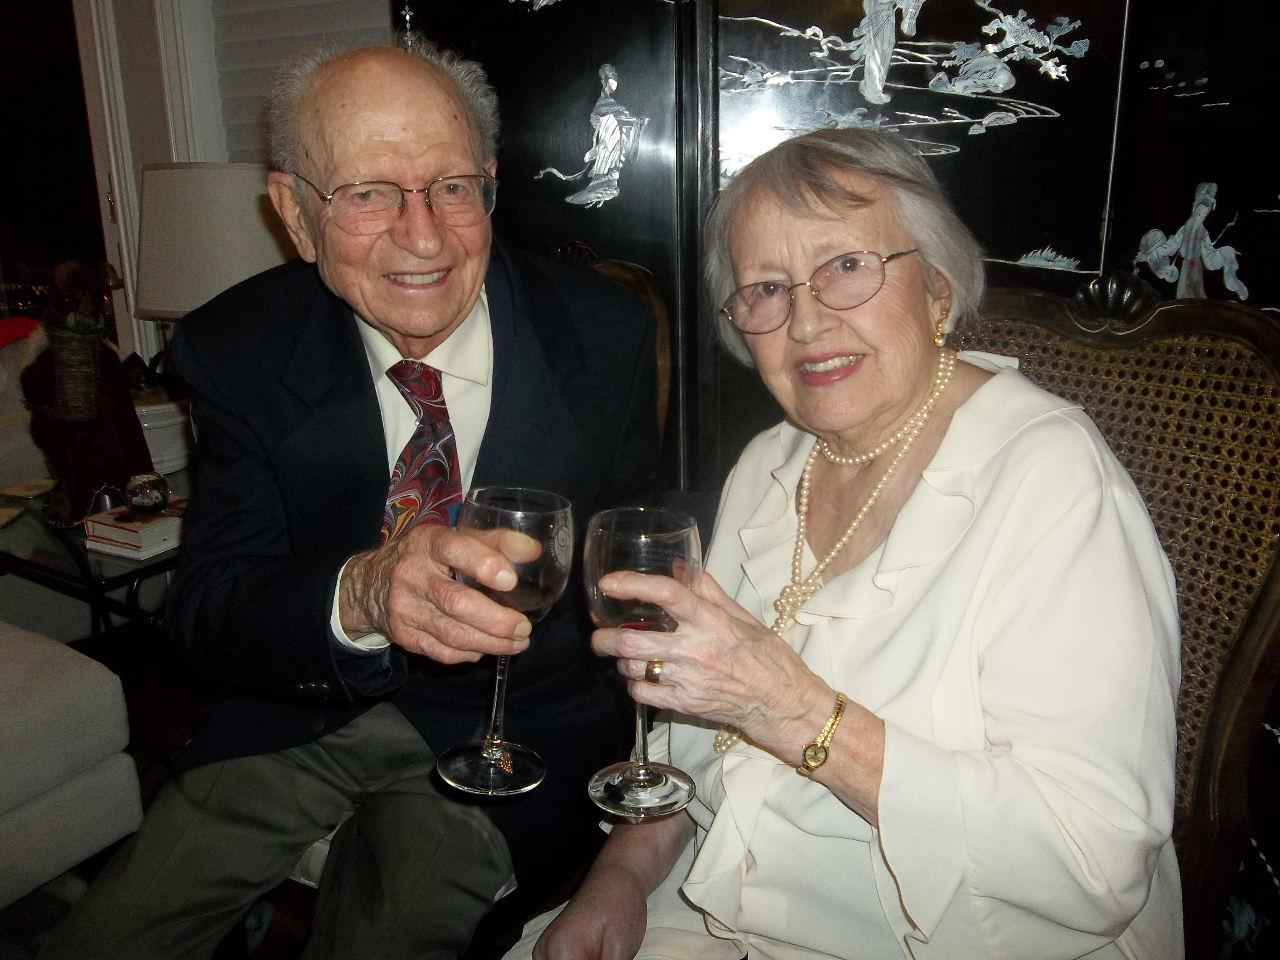 Alvin and Caryl Dockter 2012.jpg